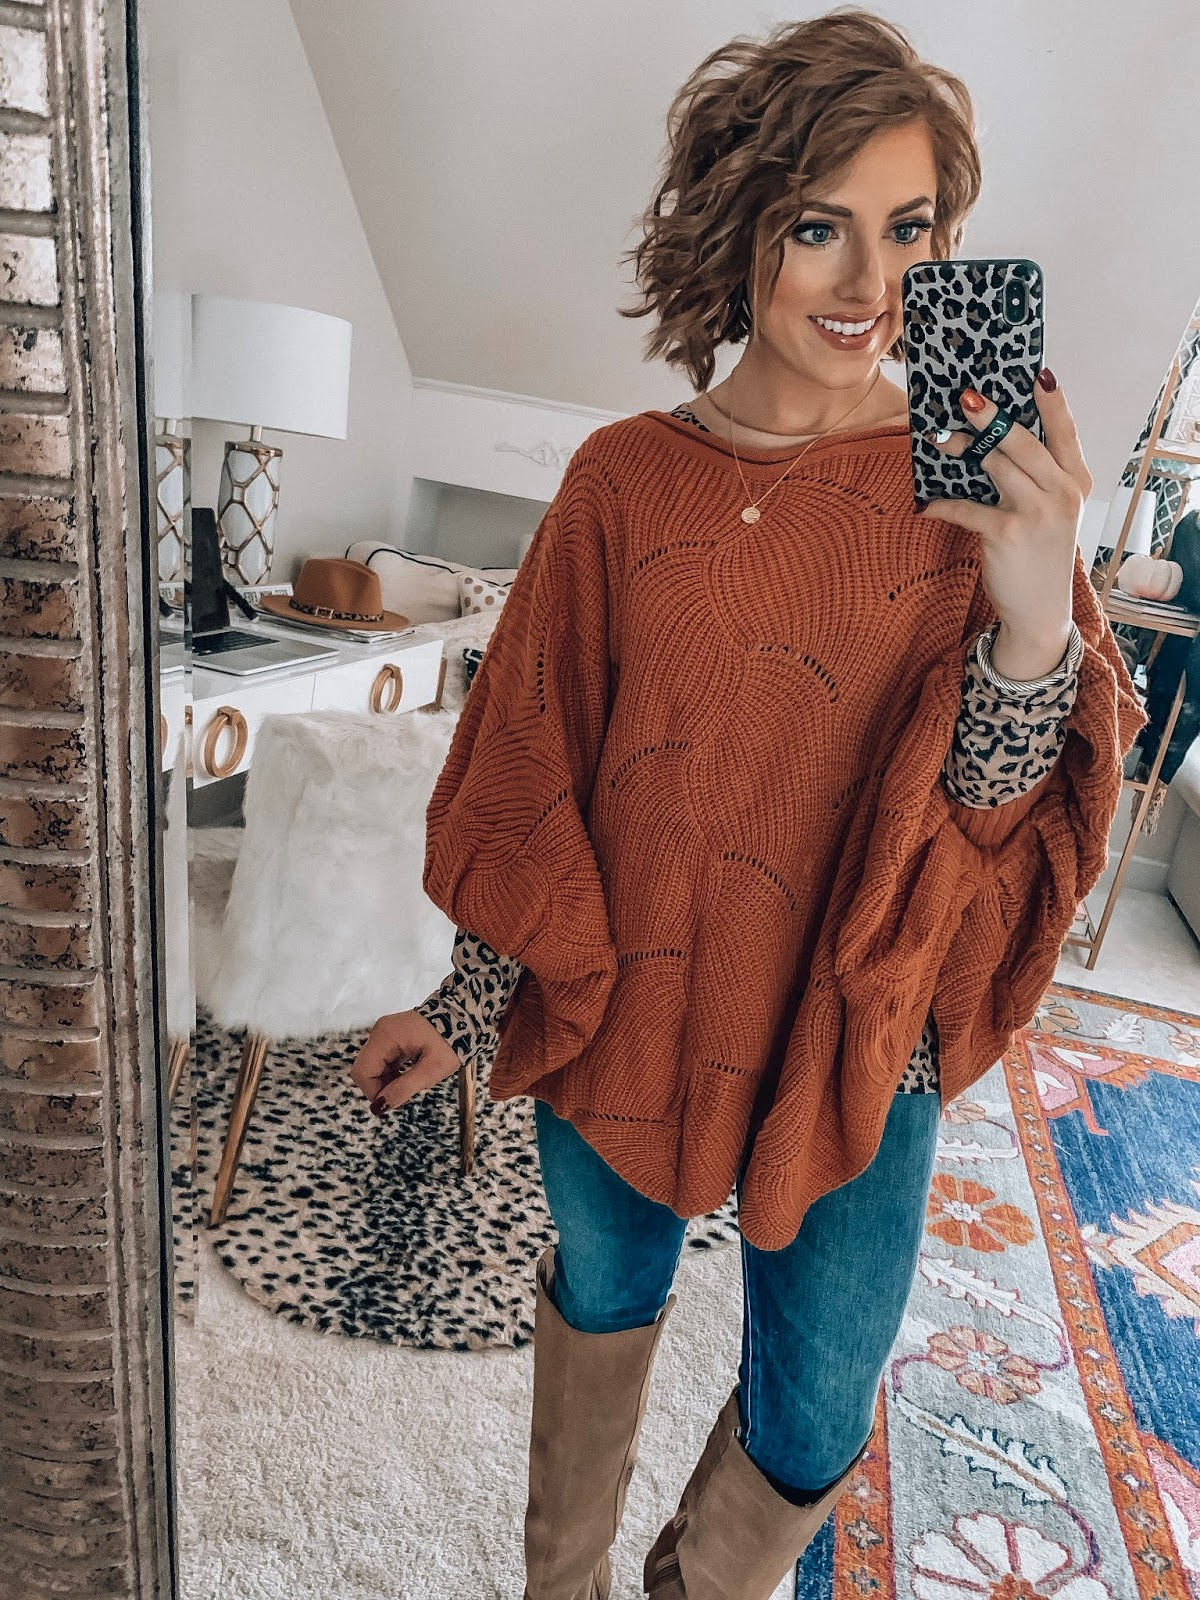 Recent Amazon Finds: Sweaters, Cardigans, Pullovers and More! - Something Delightful Blog #amazonfashion #fallstyle #affordablefashion